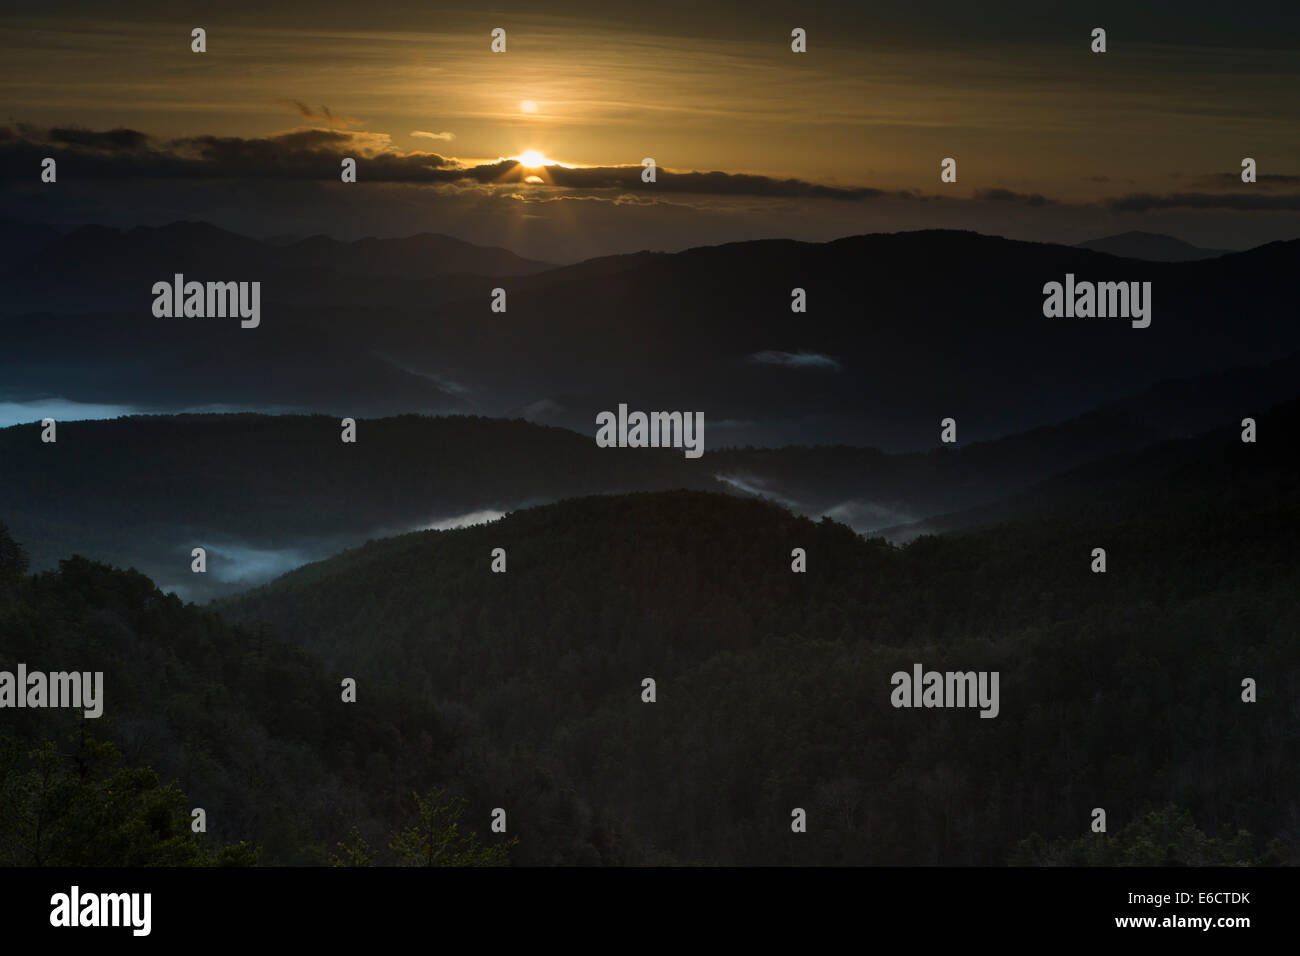 Landscape view of sunrise and mist settled in valleys, Burgui, Spanish Pyrenees in March 2014. Stock Photo